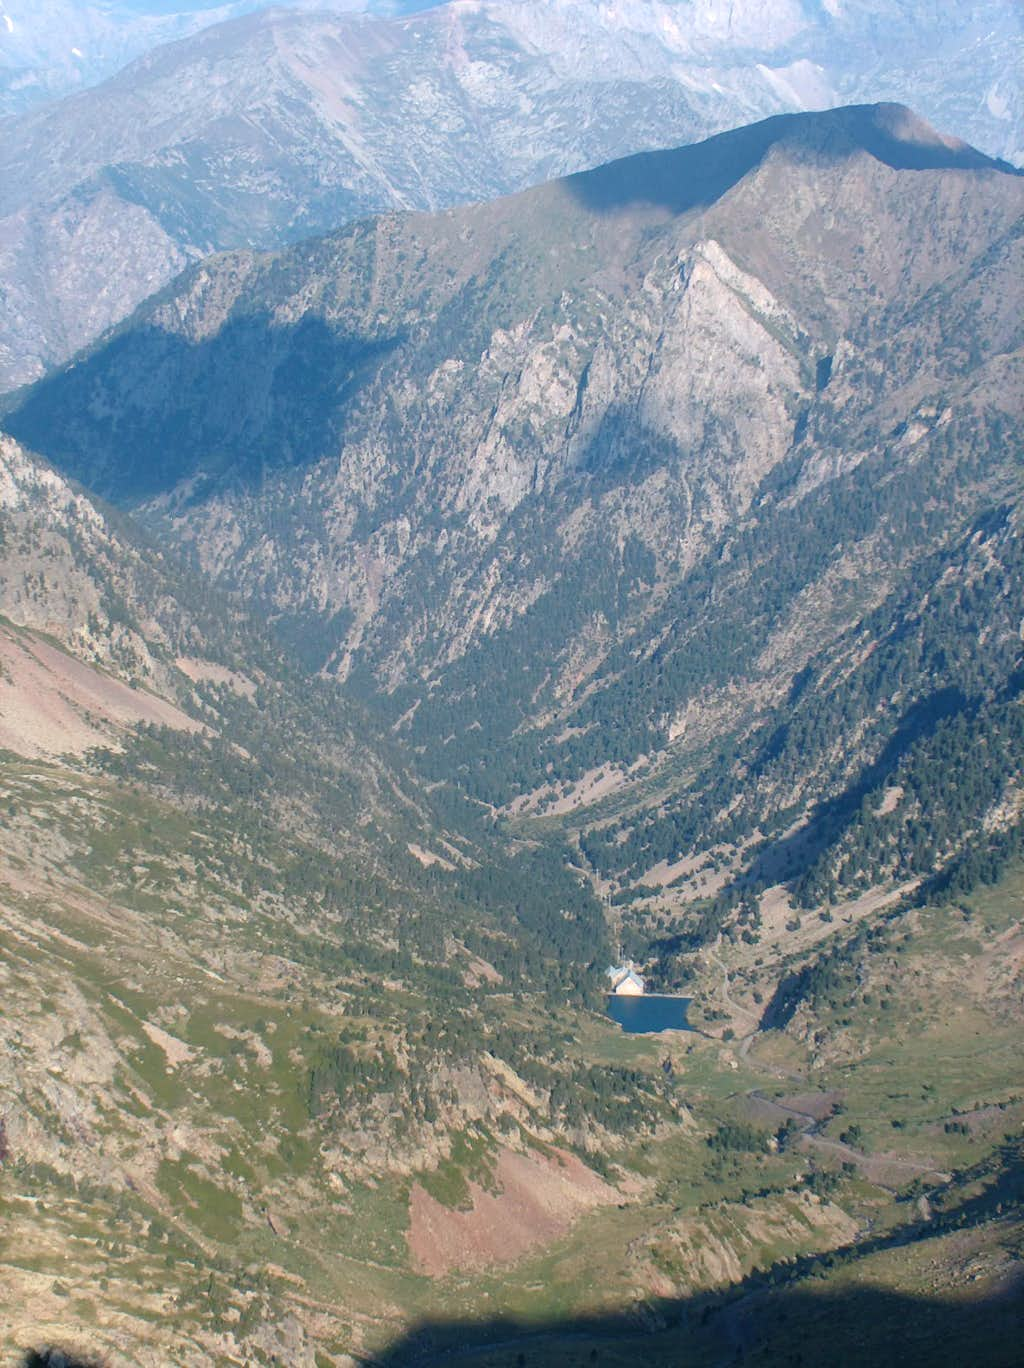 From Pico d'Ordiceto, looking down into the Ordiceto valley